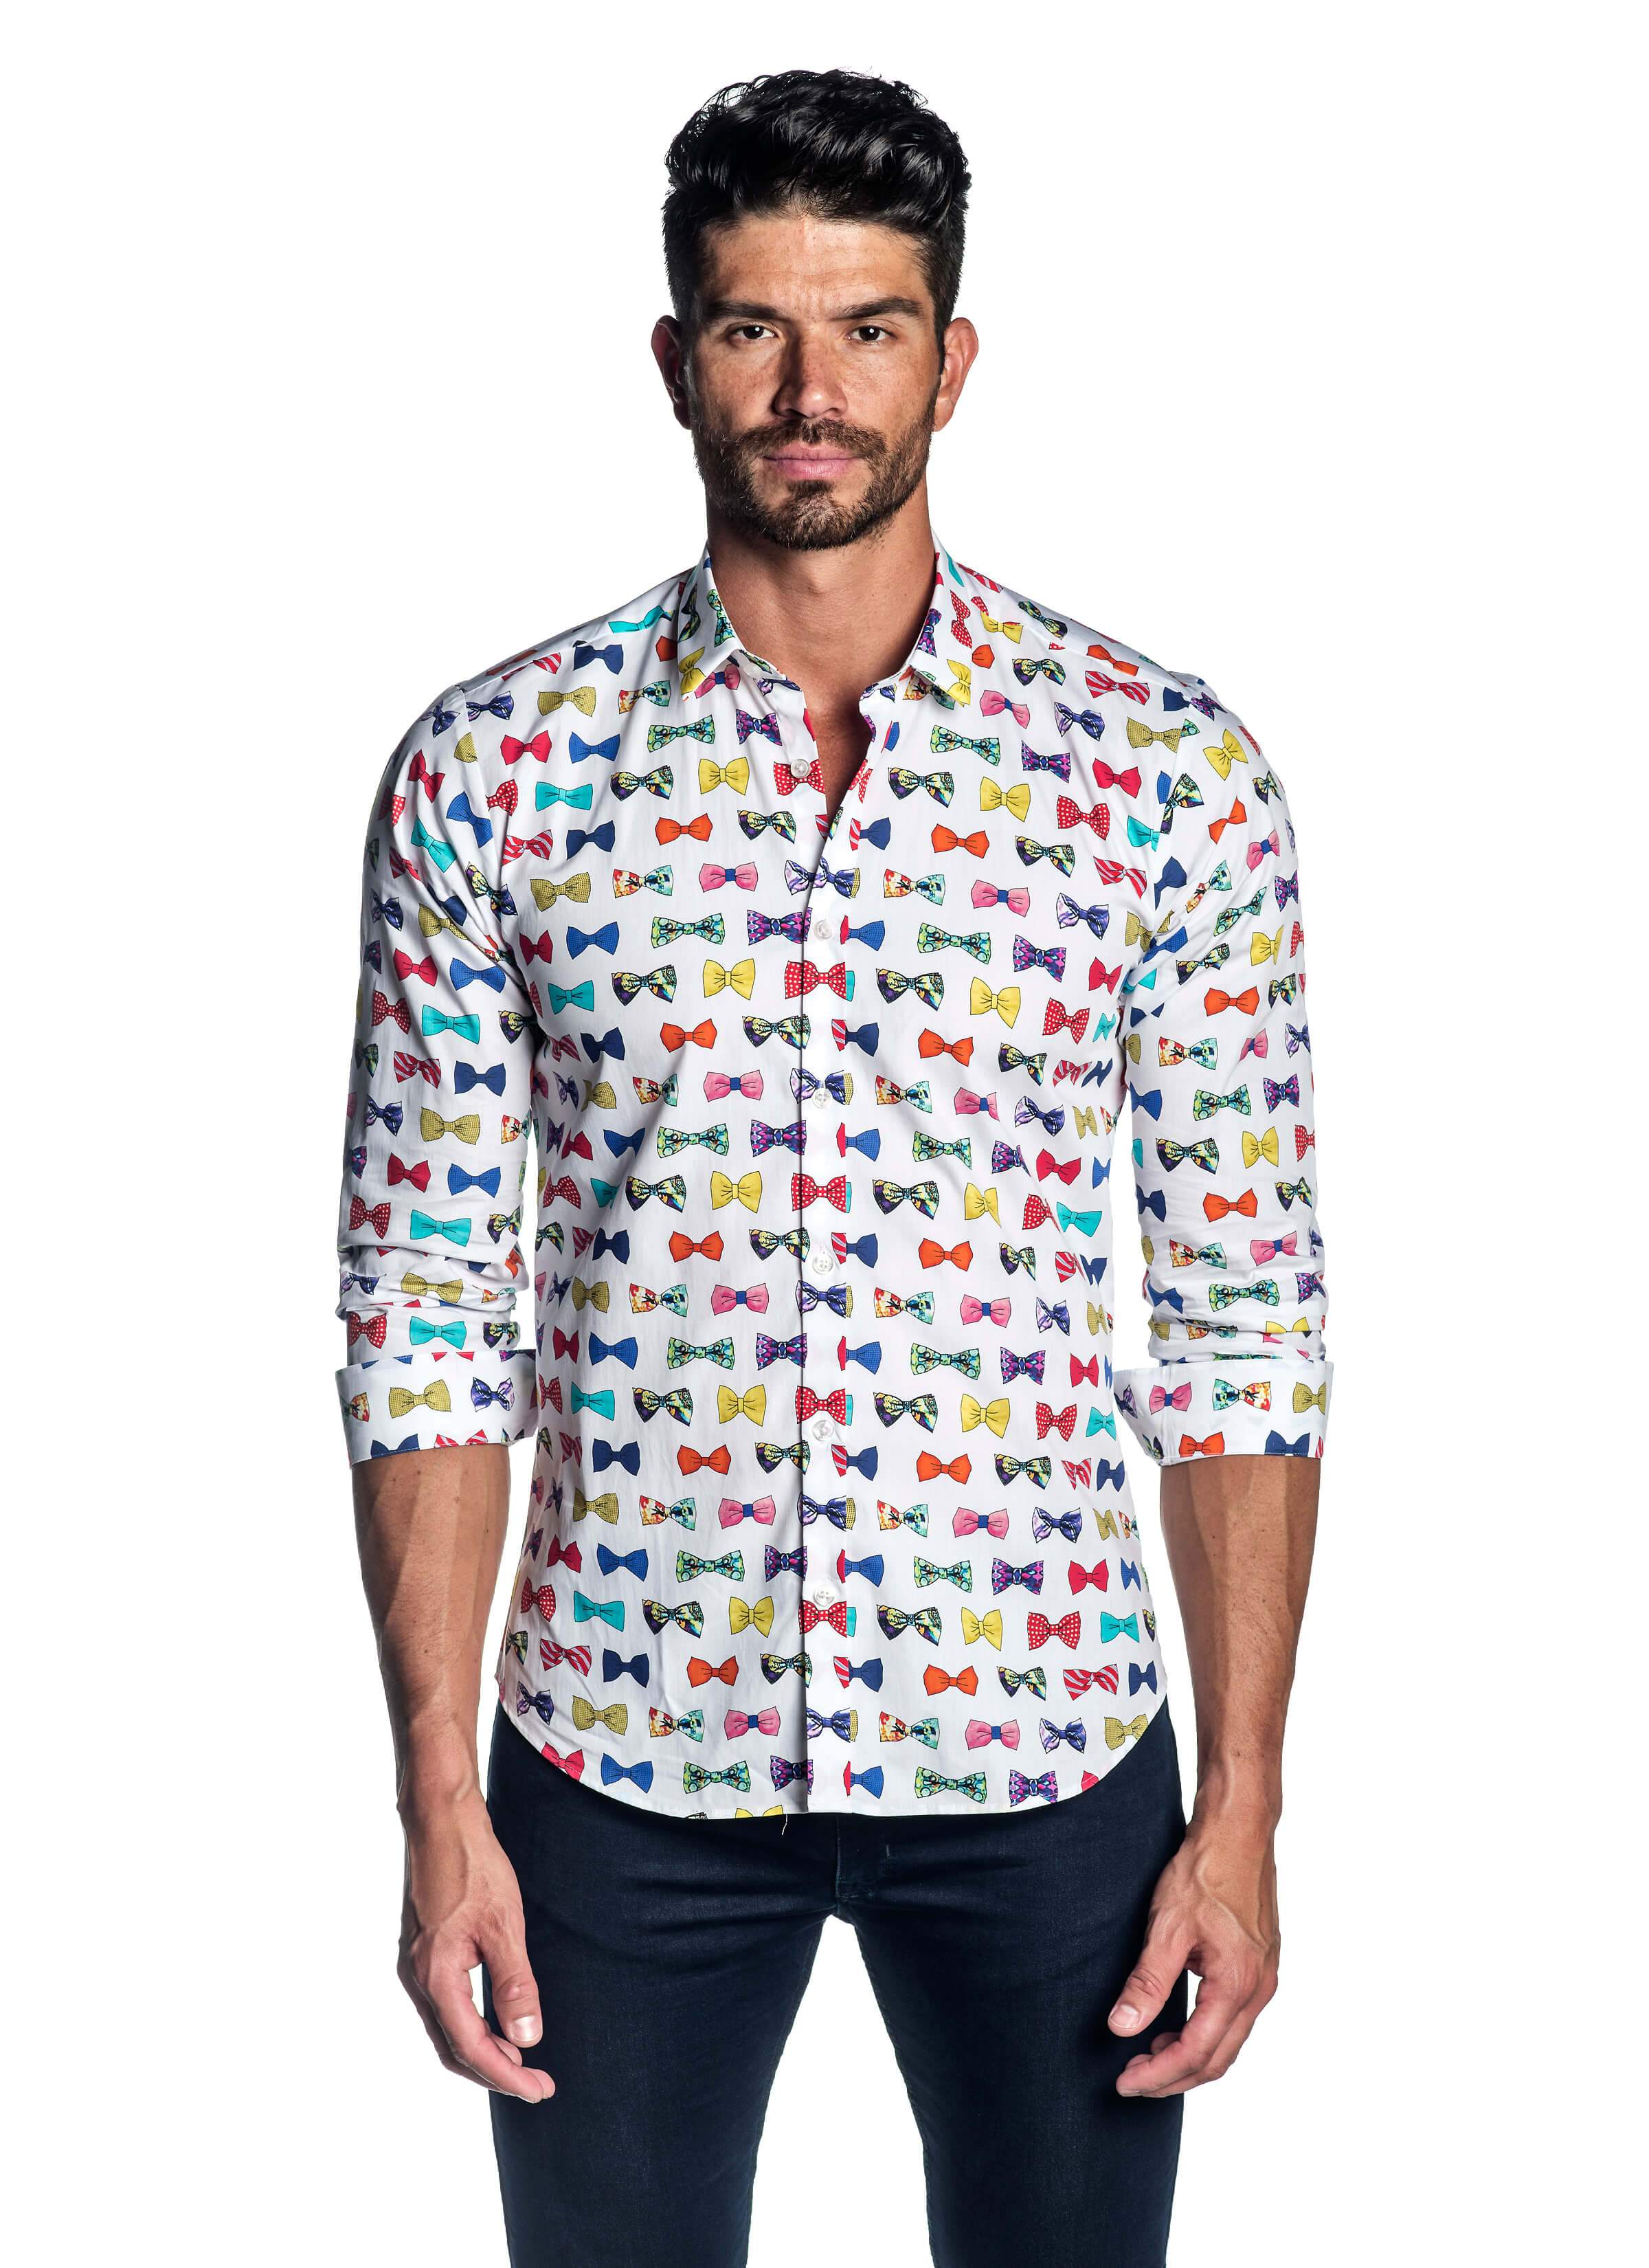 White Bow Tie Pattern Long Sleeve Shirt for Men - Front - AH-T-741